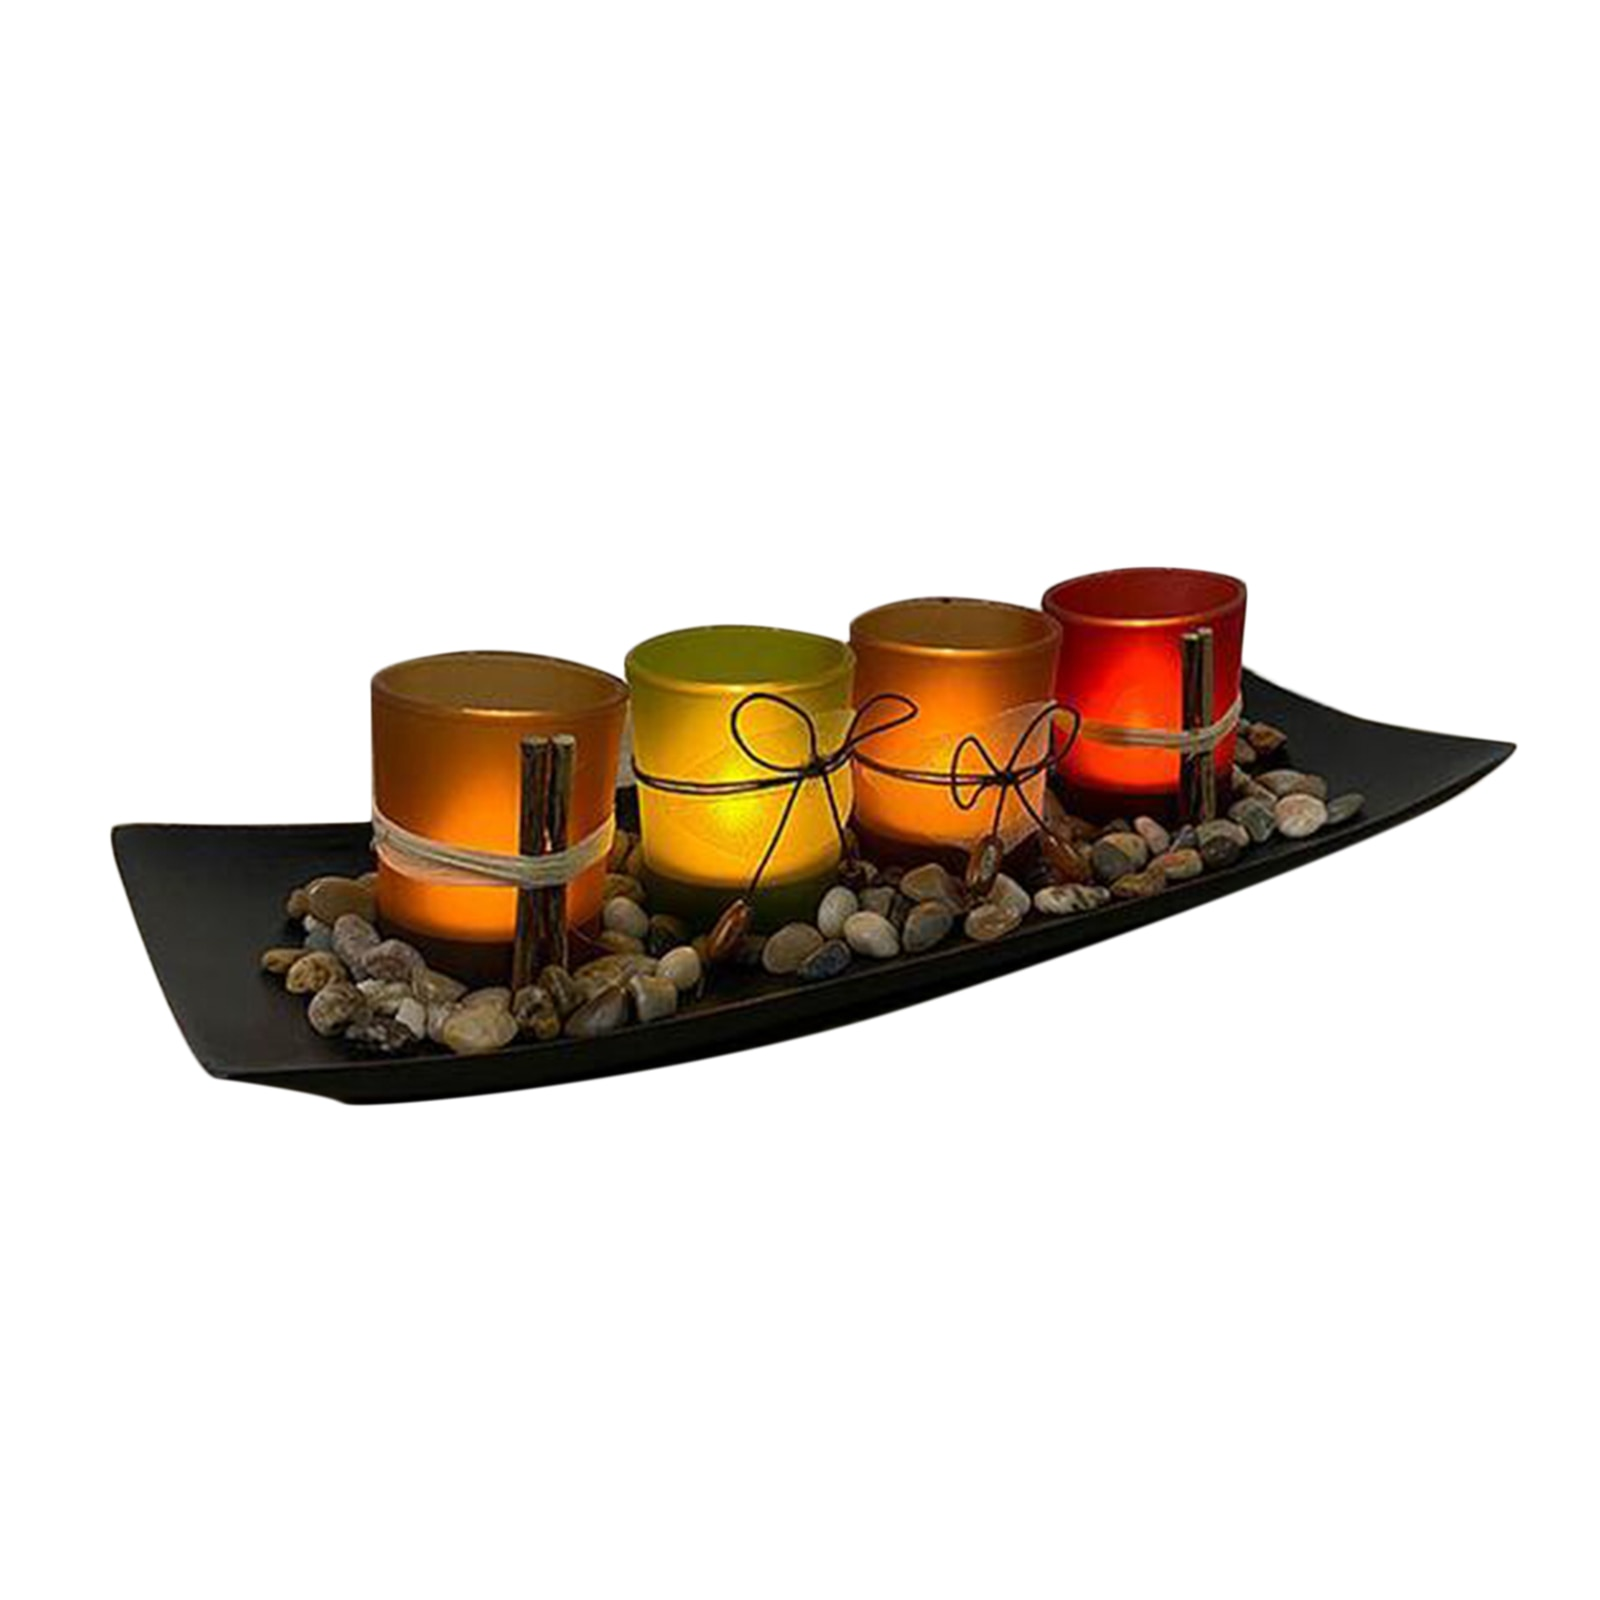 Candle Holders Set for Bathroom Decorations Dining Room Table Centerpieces Decor Large Tray with 4 Candle Holders  - buy with discount